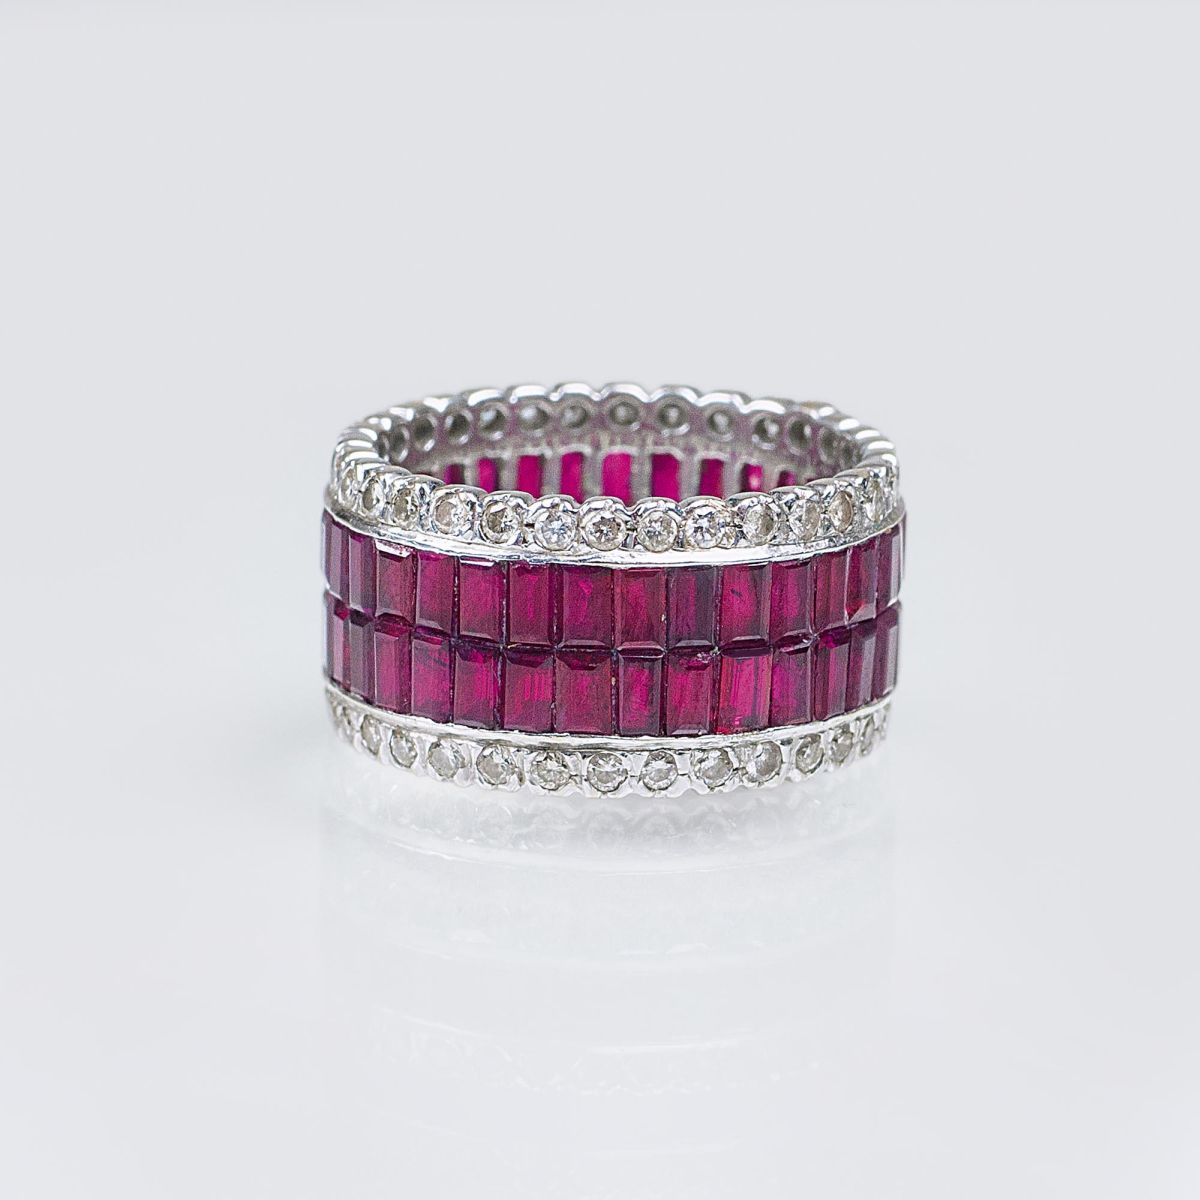 A Memory Ring with Rubies and Diamonds